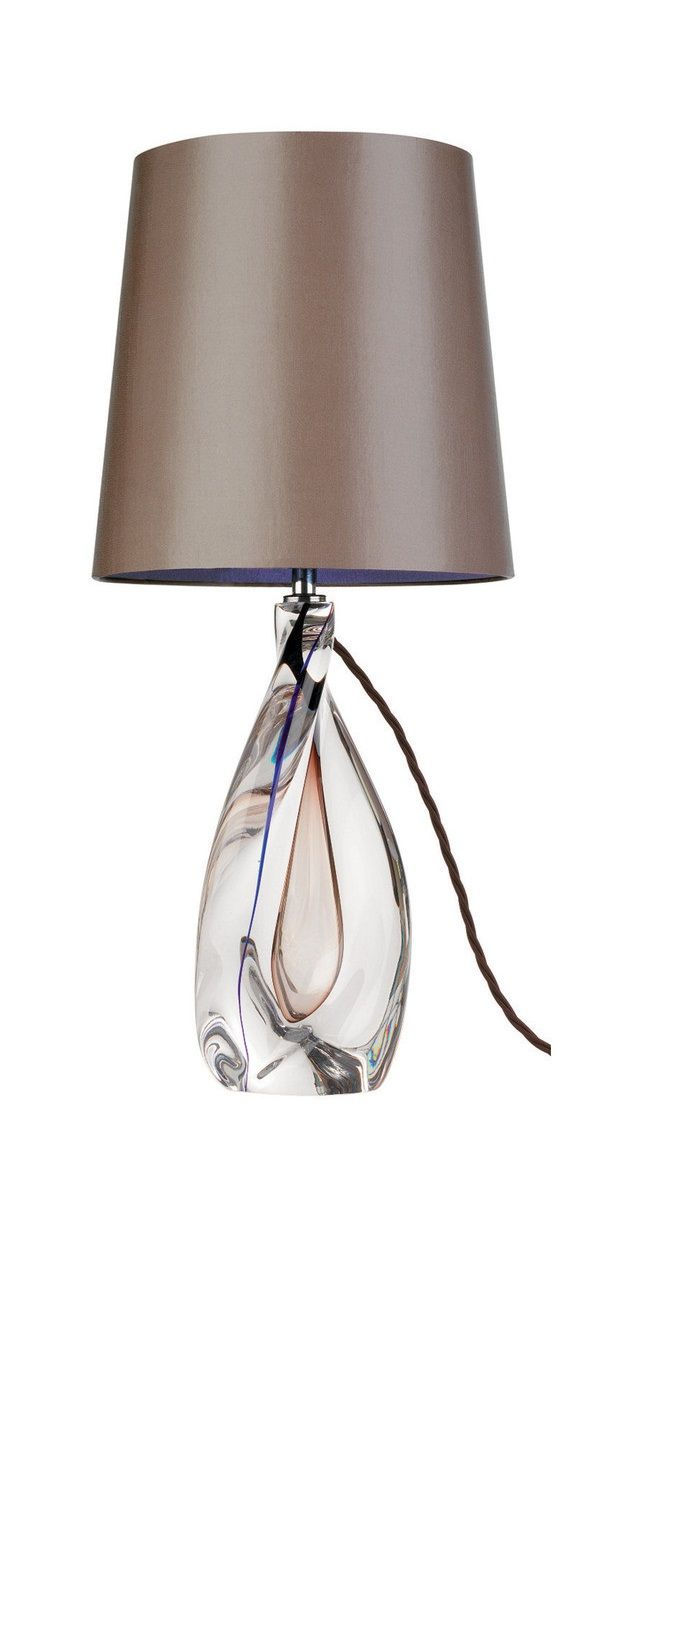 Modern glass table lamps - Instyle Decor Com Glass Table Lamps Glass Bedroom Table Lamps Modern Glass